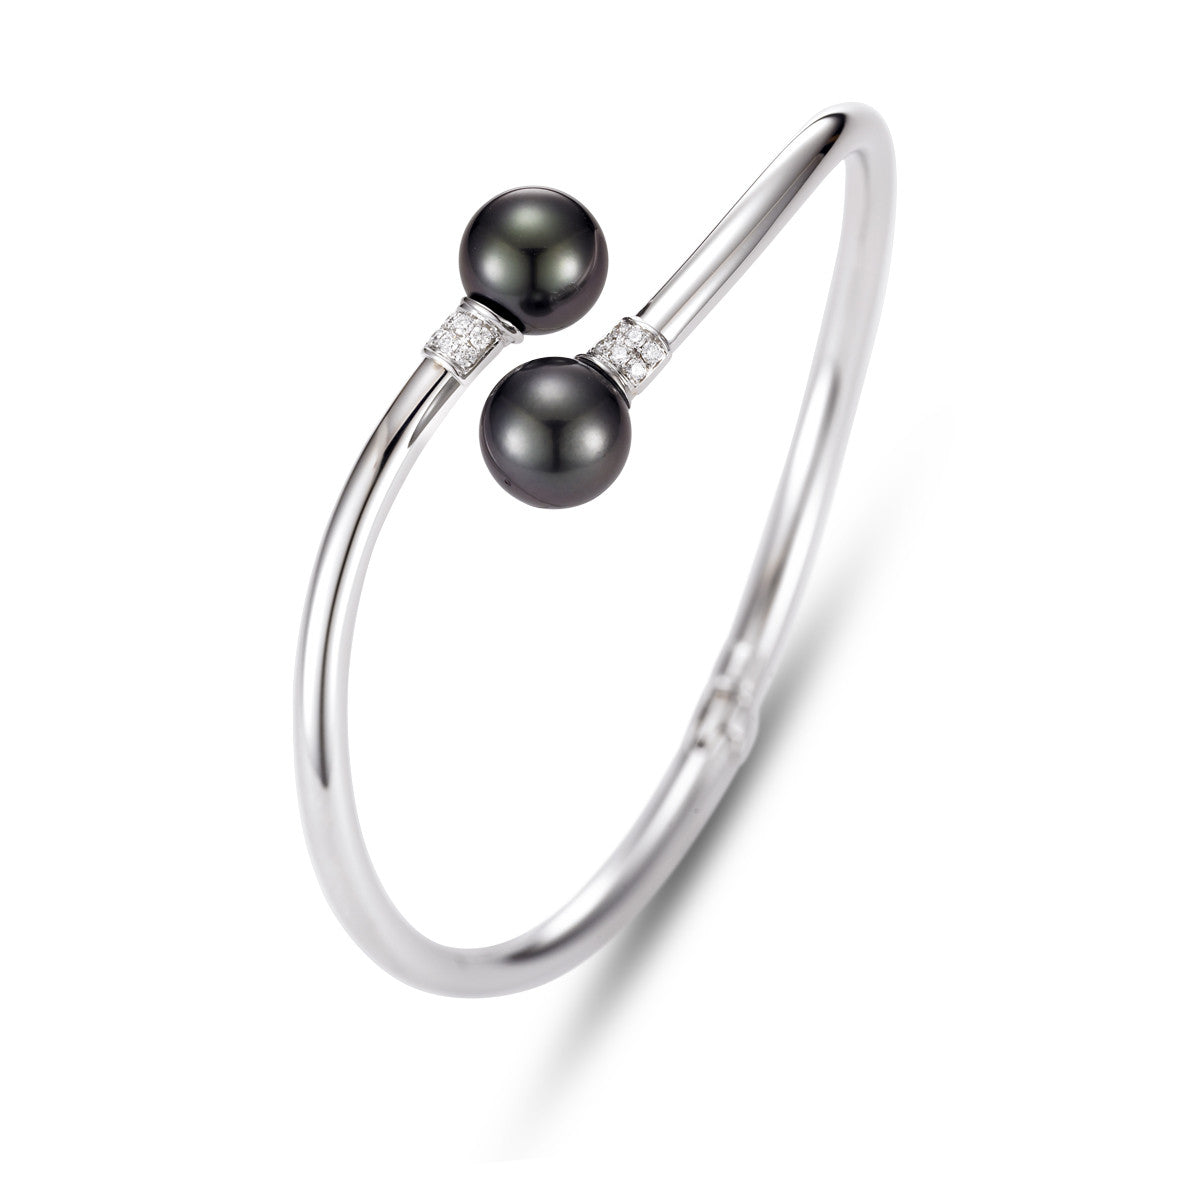 Tahitian pearl and white gold bracelet with diamond pave accents